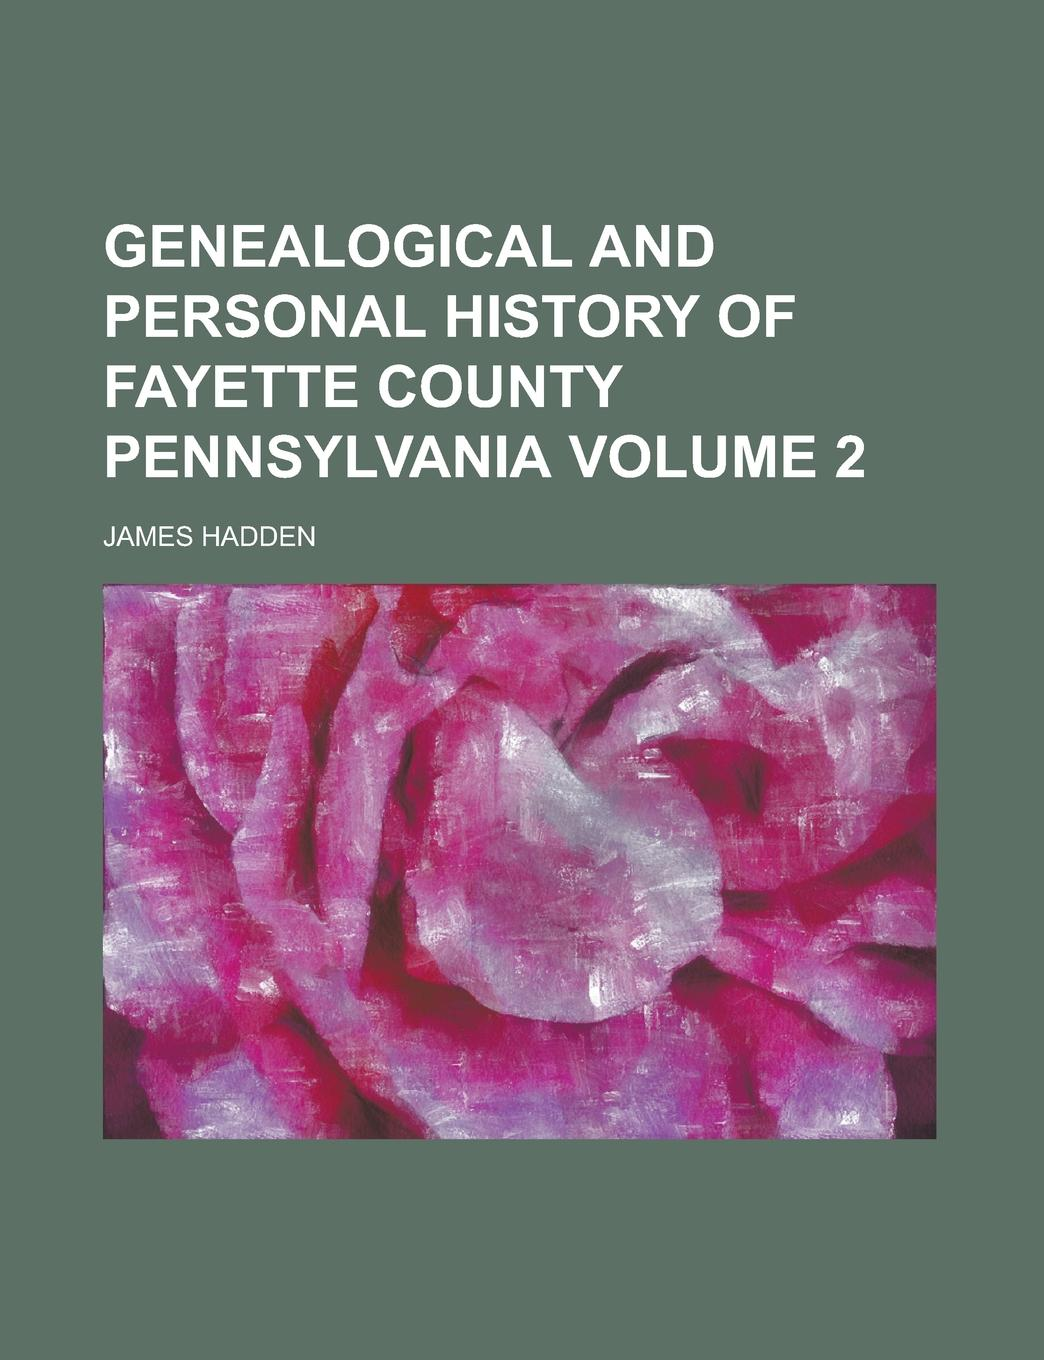 James Hadden Genealogical and personal history of Fayette county Pennsylvania Volume 2